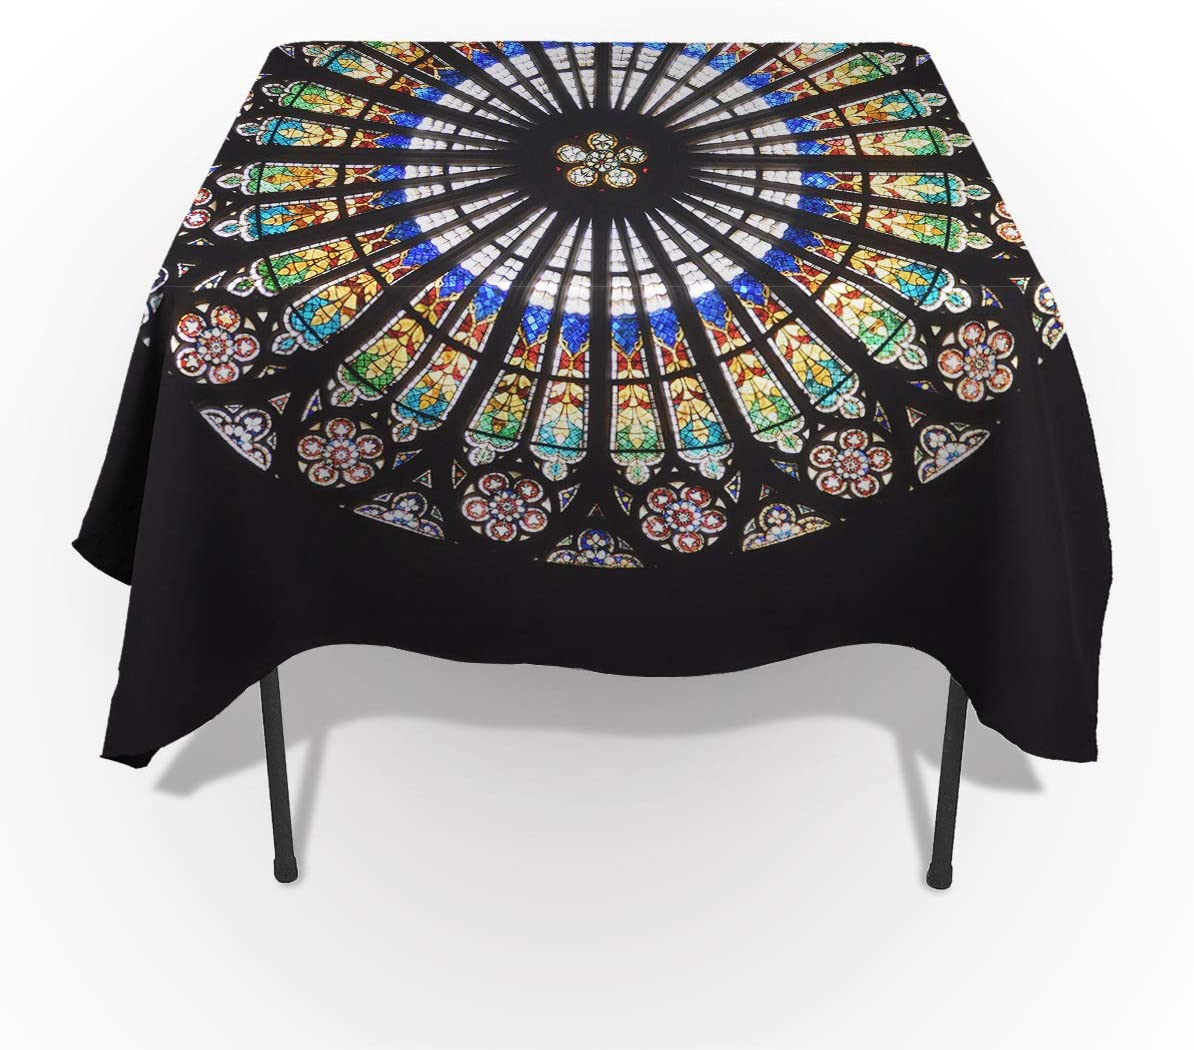 Rectangle Tablecloth Washable Polyester Fabric Table Cover Black Abstract Mandara Floral Pattern Wrinkle Free Printed Tablecloth Protector for Kitchen Dining Party 60×140inch